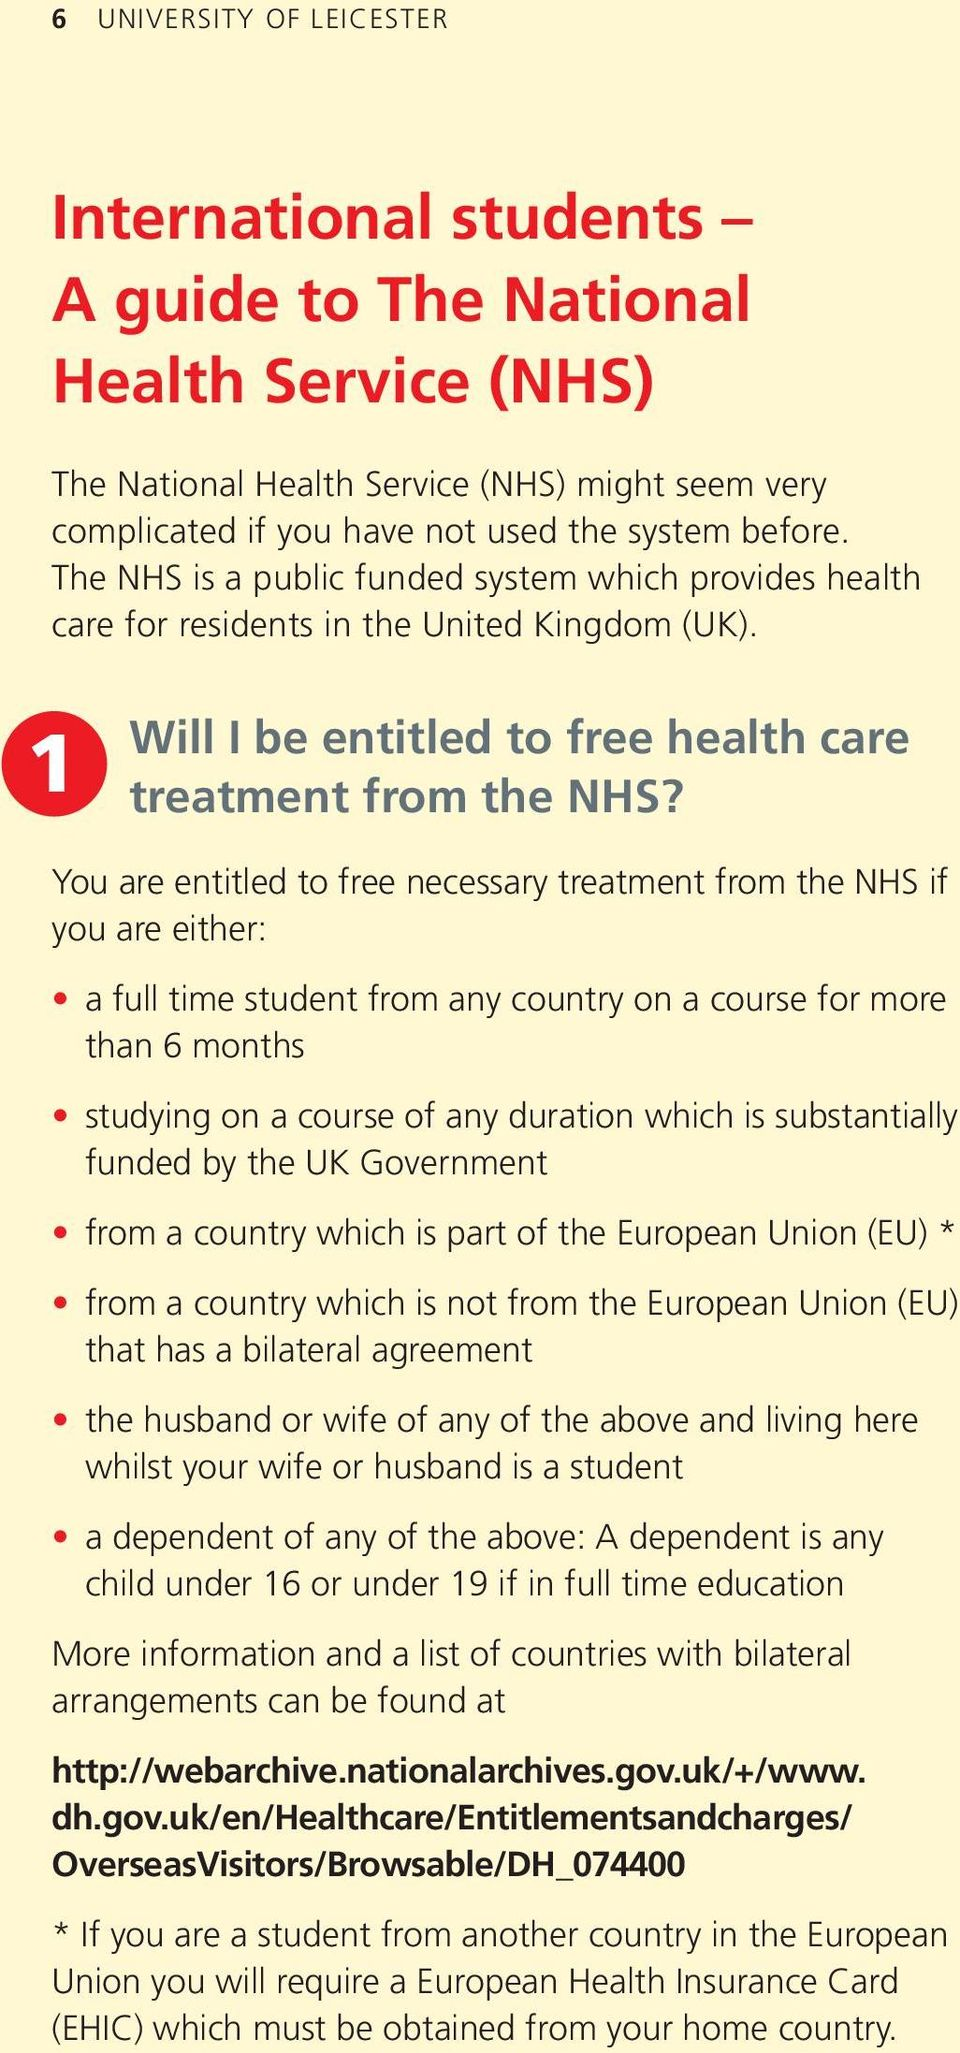 You are entitled to free necessary treatment from the NHS if you are either: a full time student from any country on a course for more than 6 months studying on a course of any duration which is